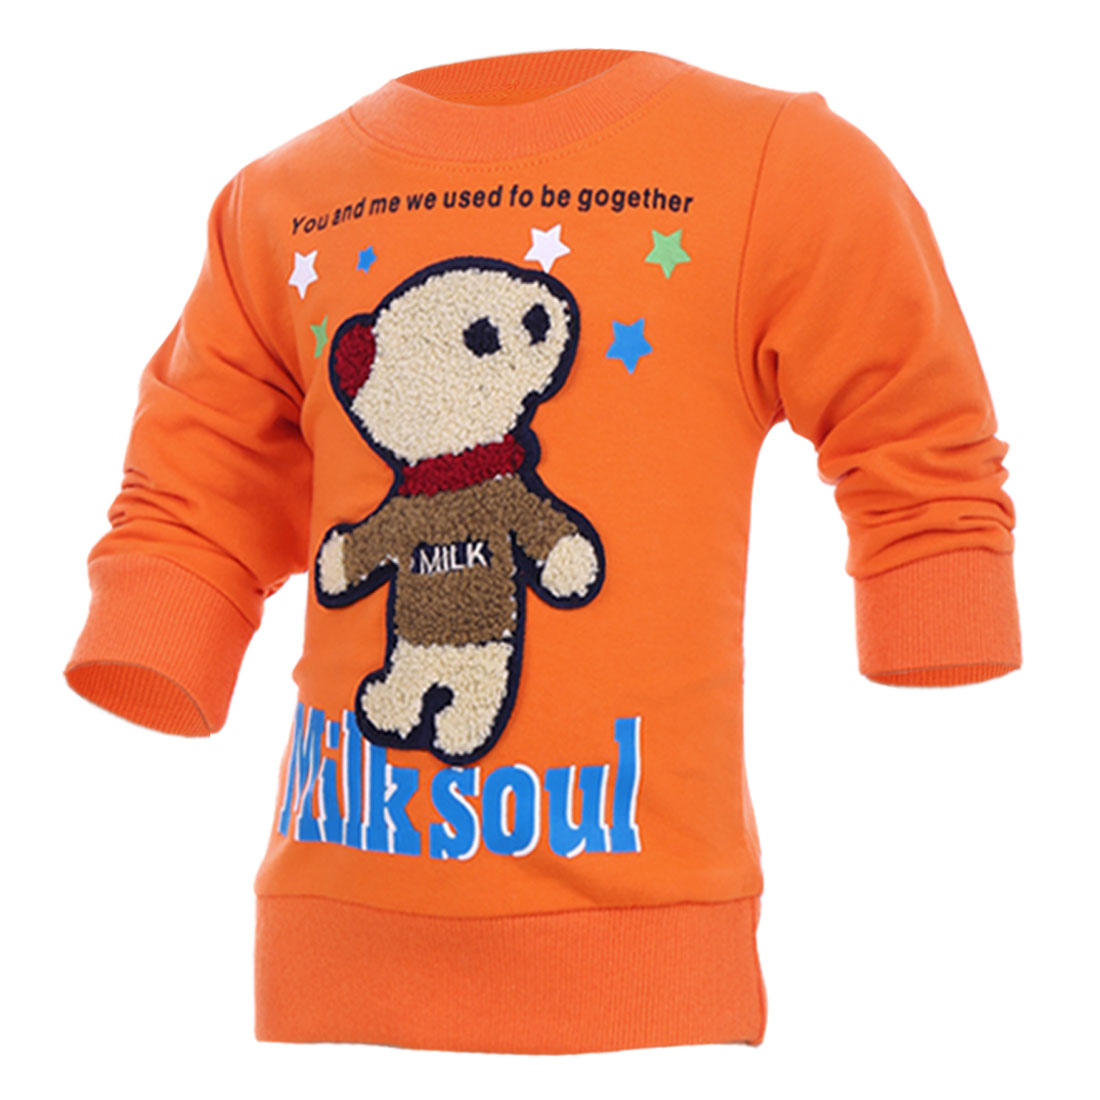 Pullover Orange Letters Pattern Design Long-Sleeved Top Shirt for Kids 4